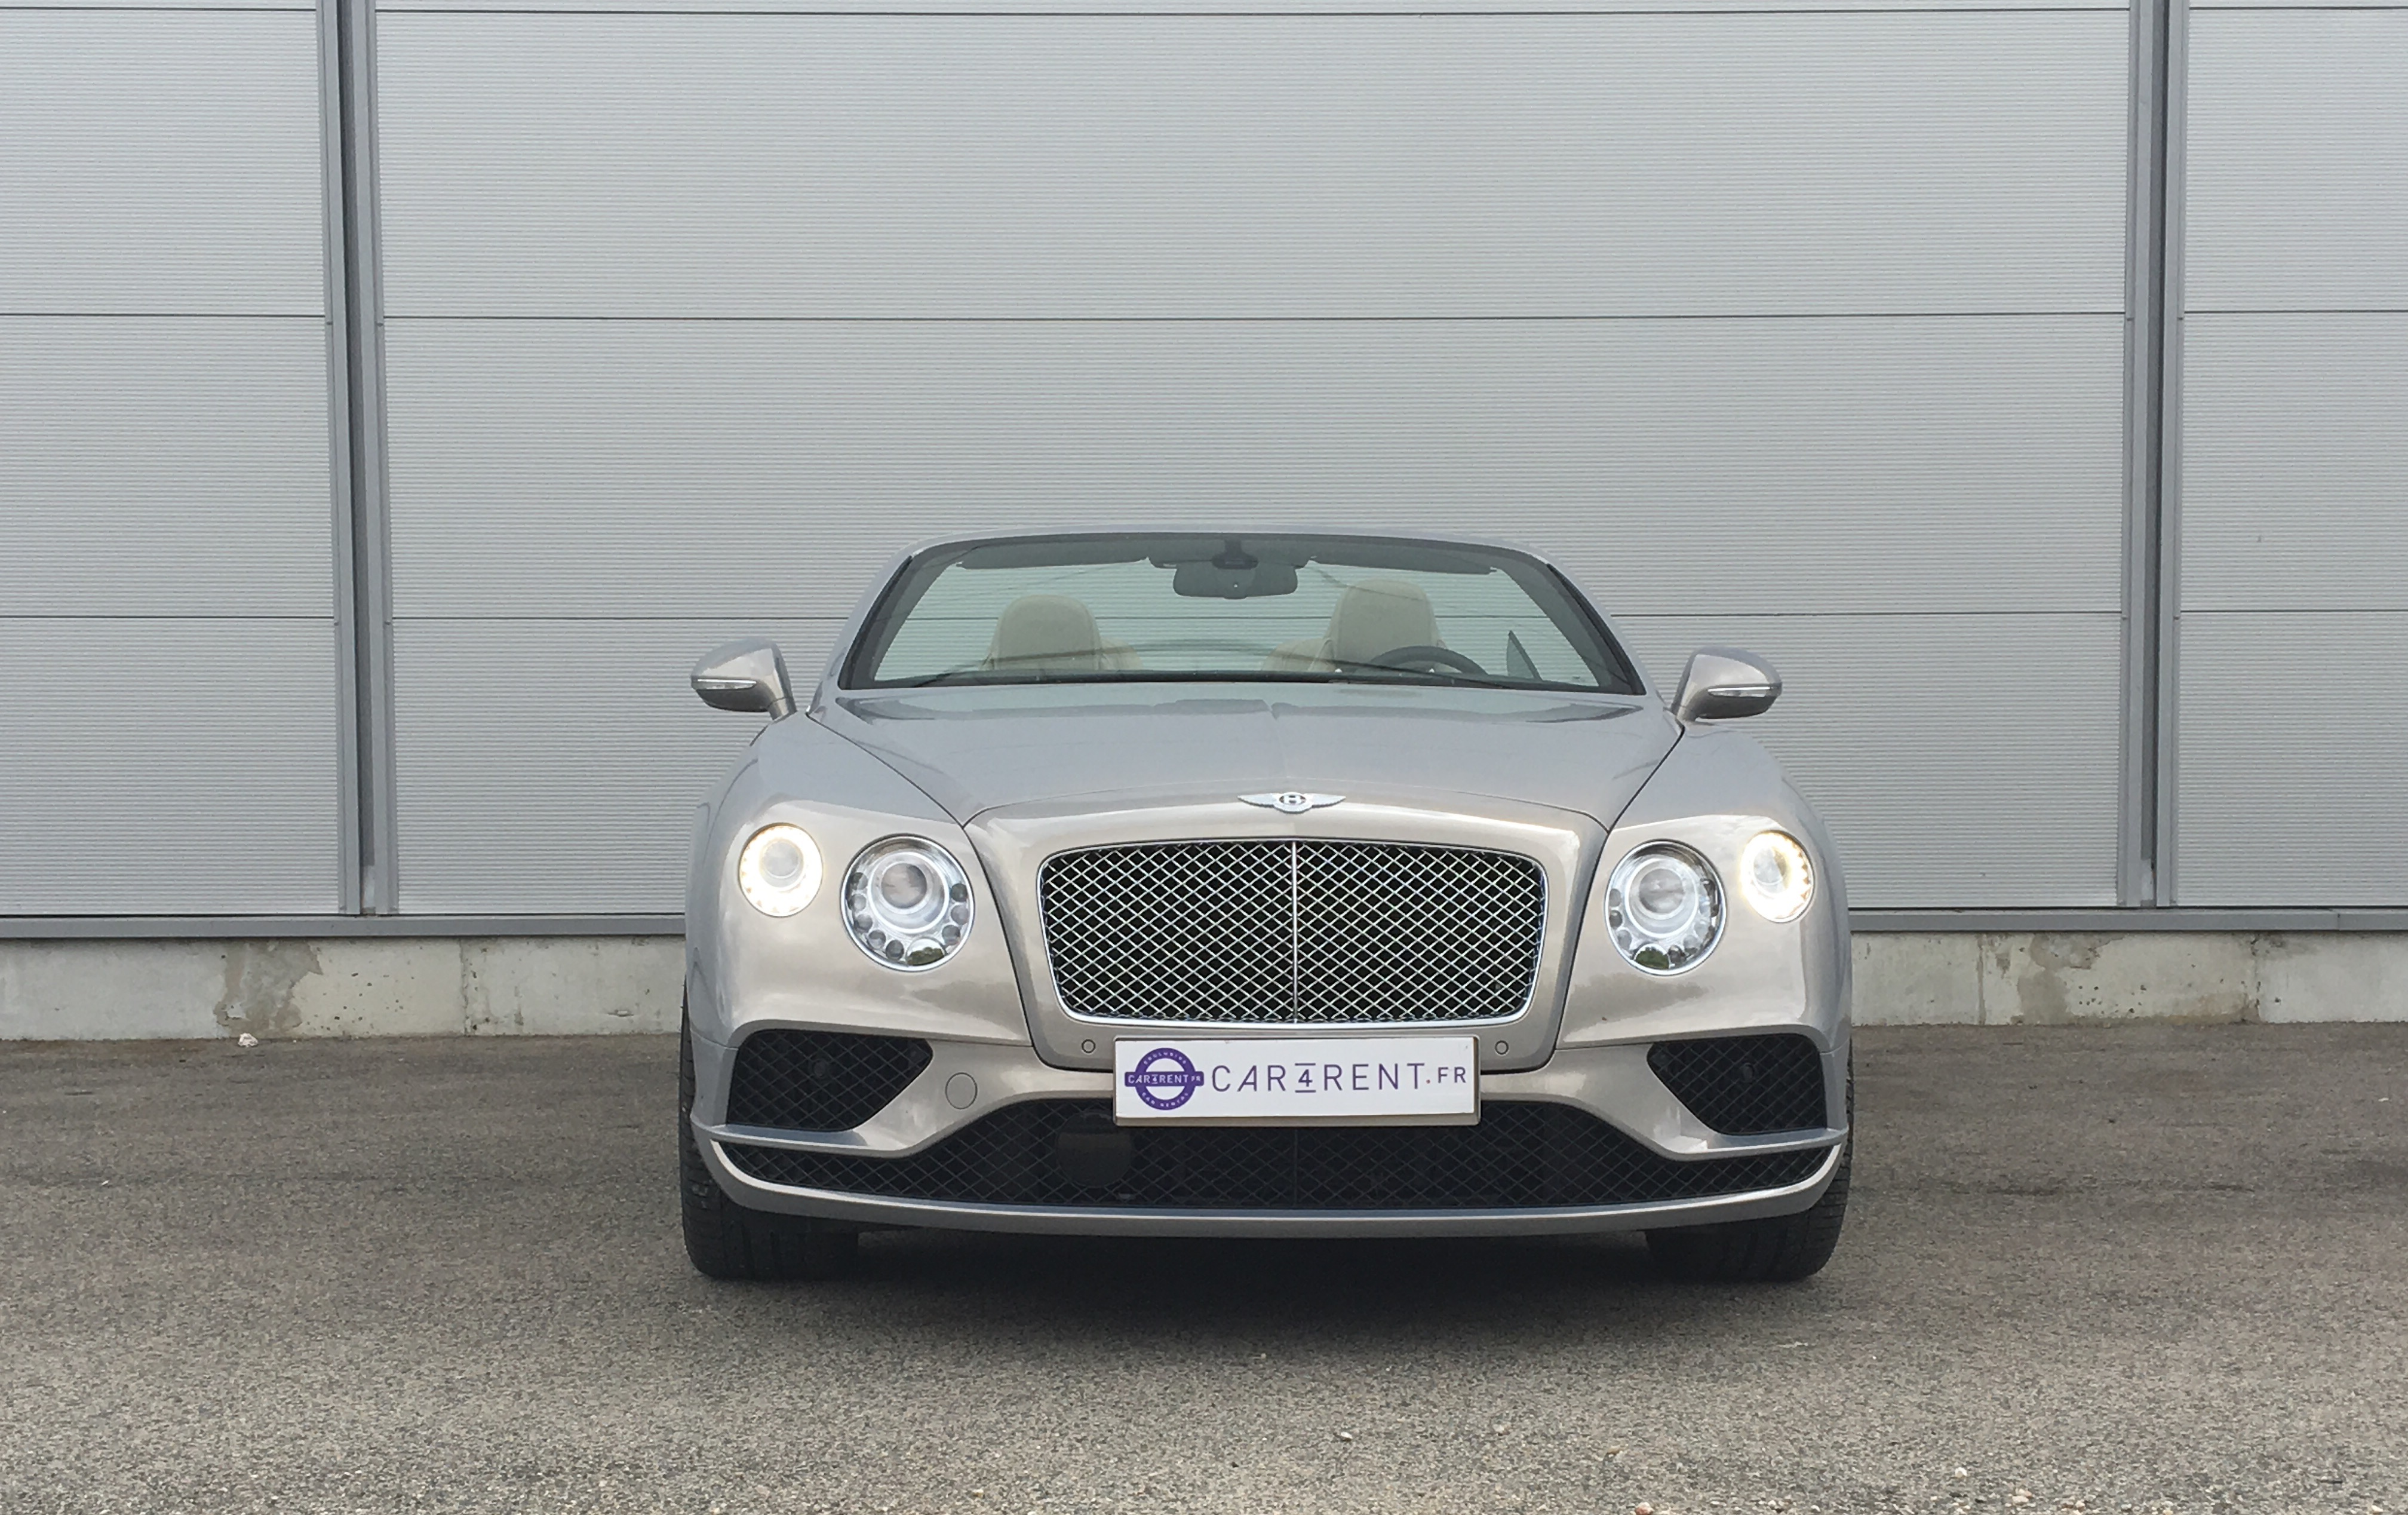 location bentley continental gtc aéroport nice car4rent